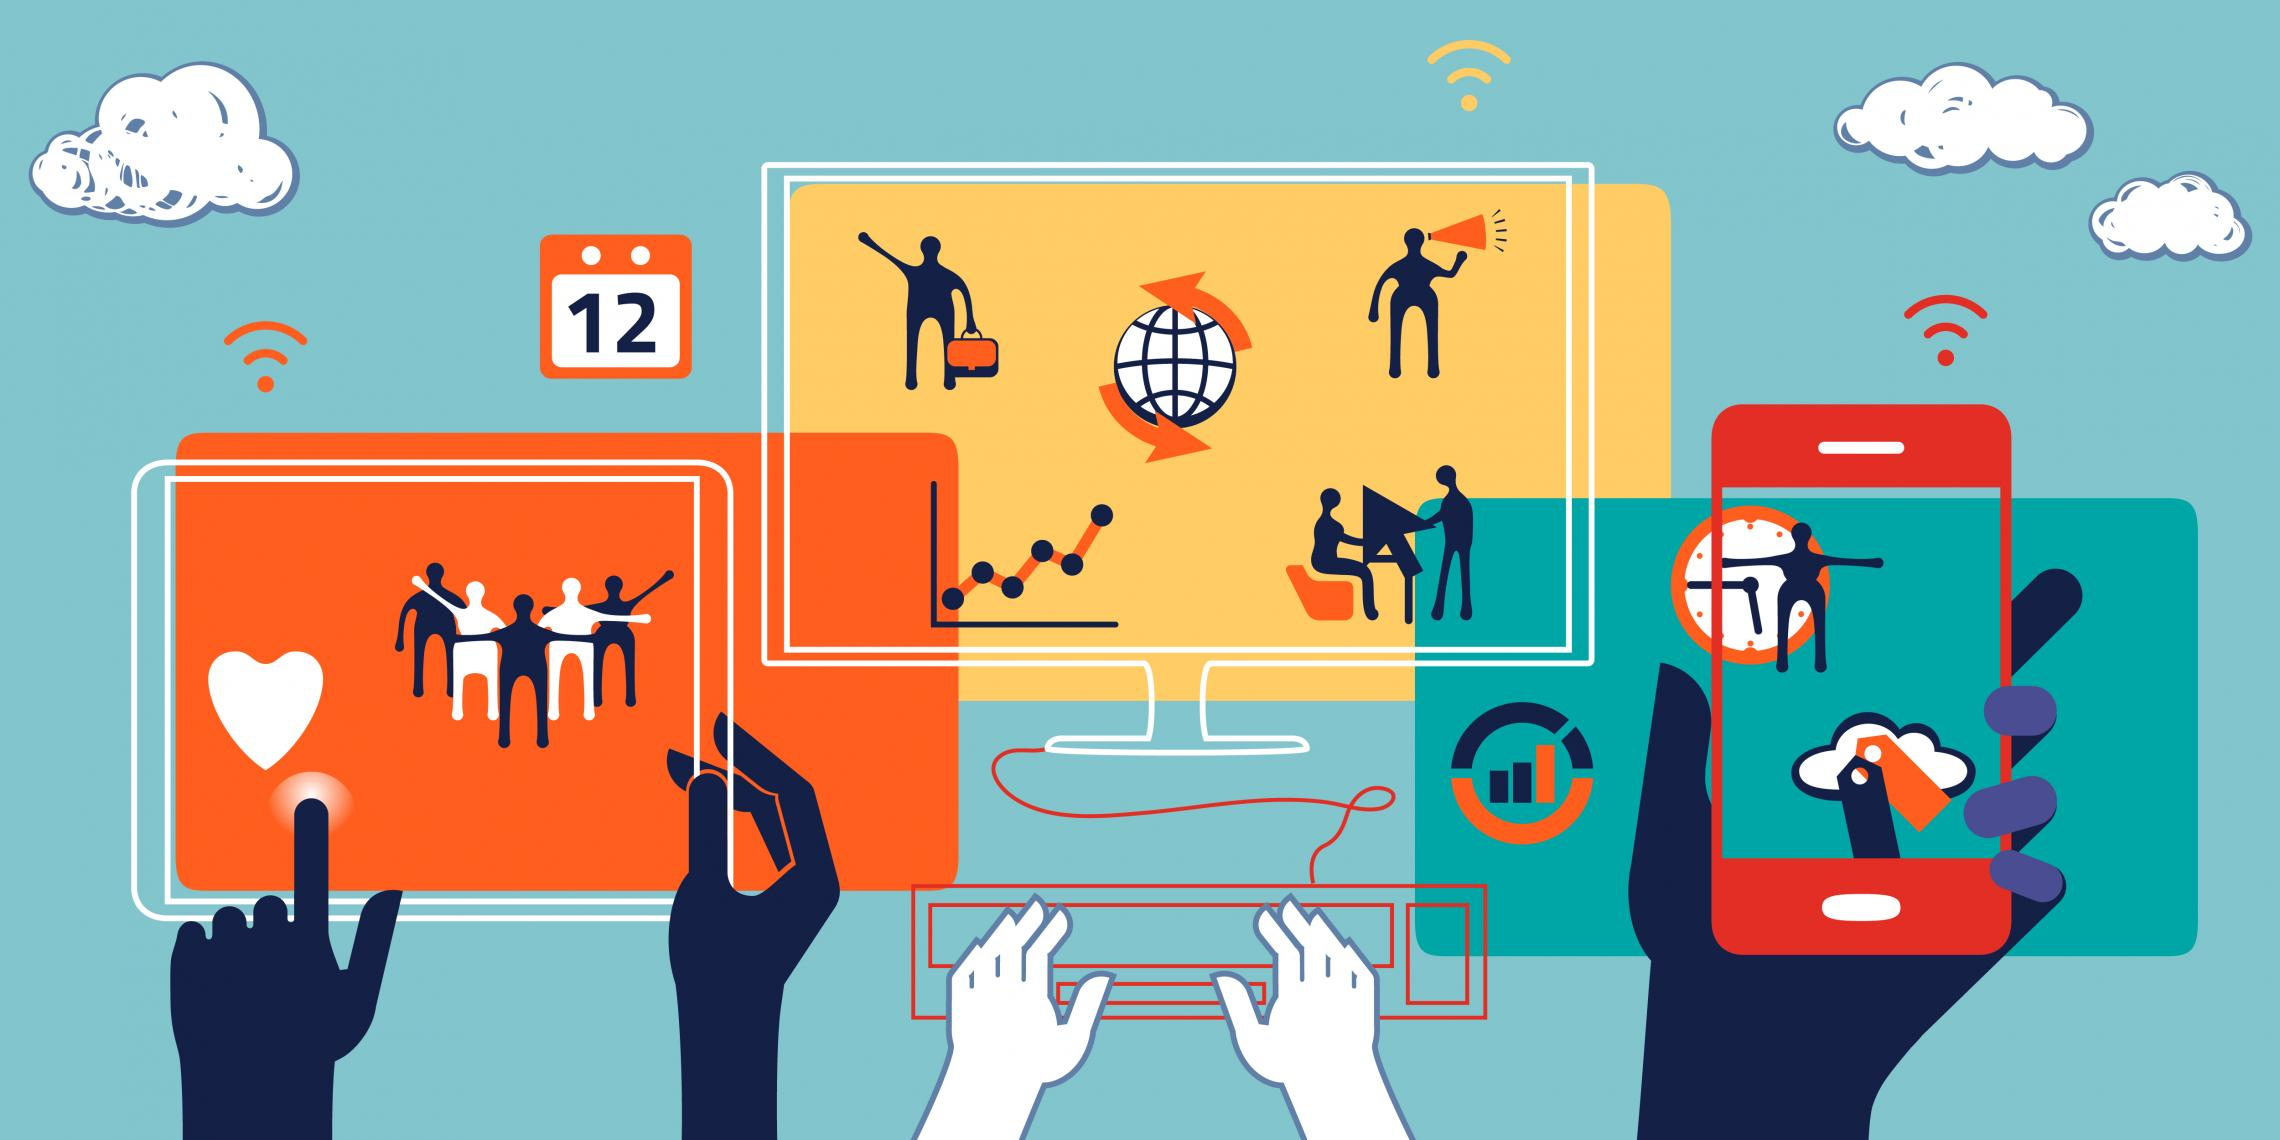 Five Strategic Imperatives for Digital Brand Building | INSEAD Knowledge